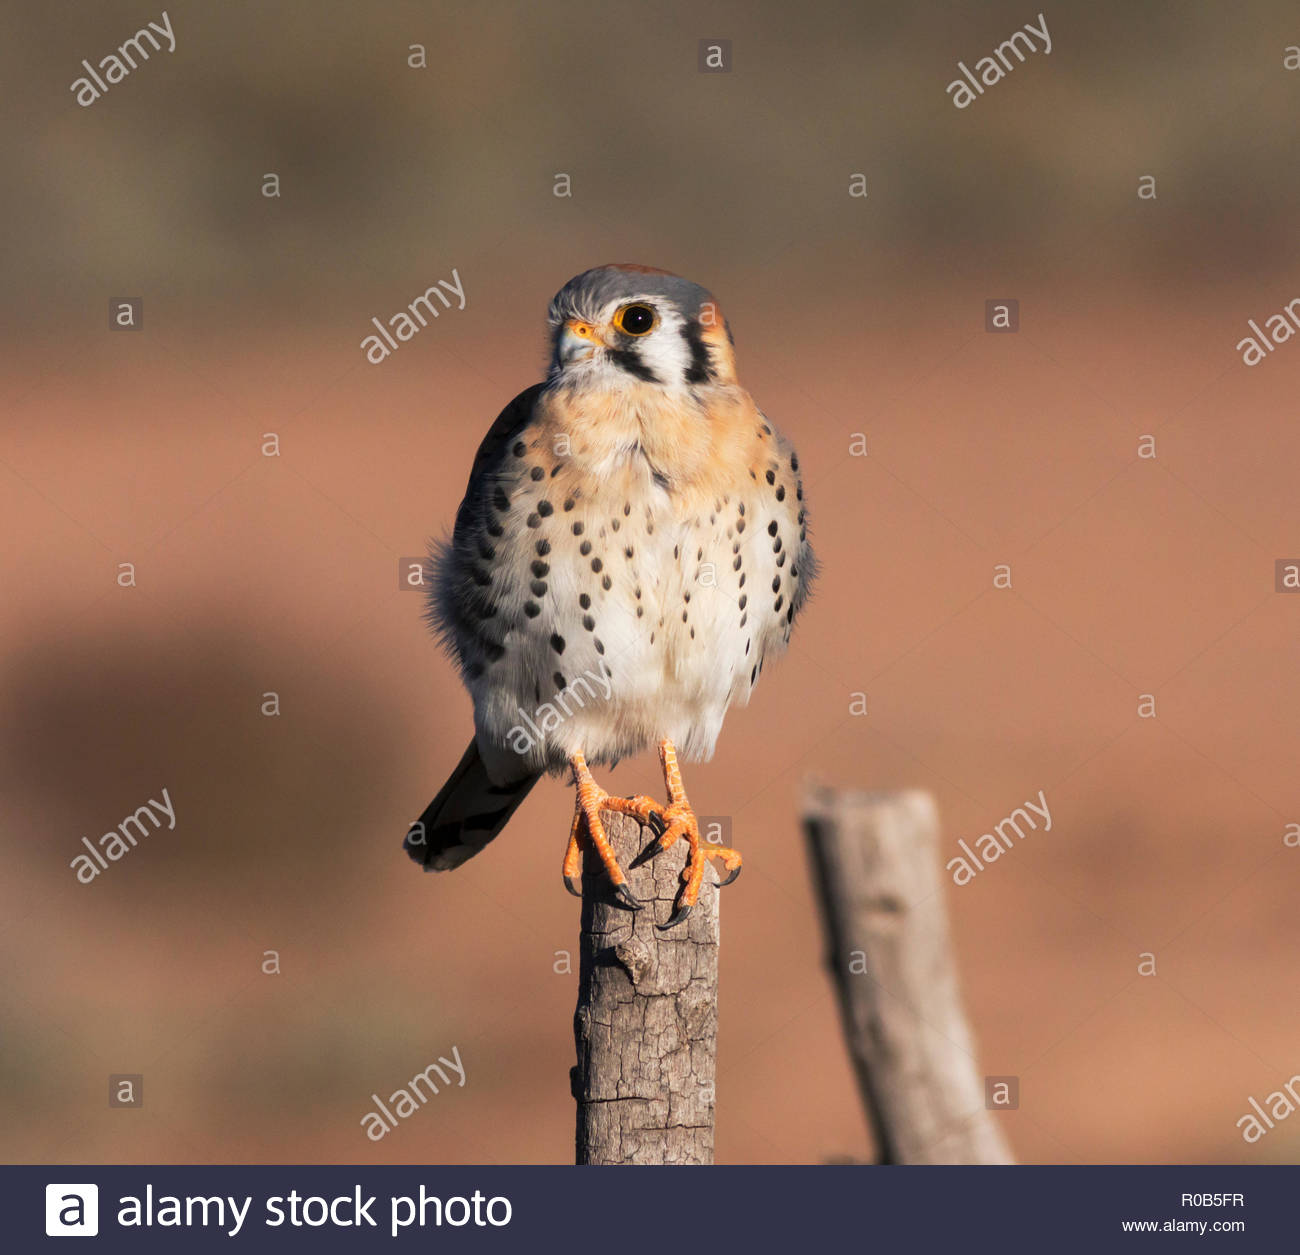 American Kestrel, Falco sparverius, Sparrow Hawk, perched on wooden post in Arizona USA - Stock Image